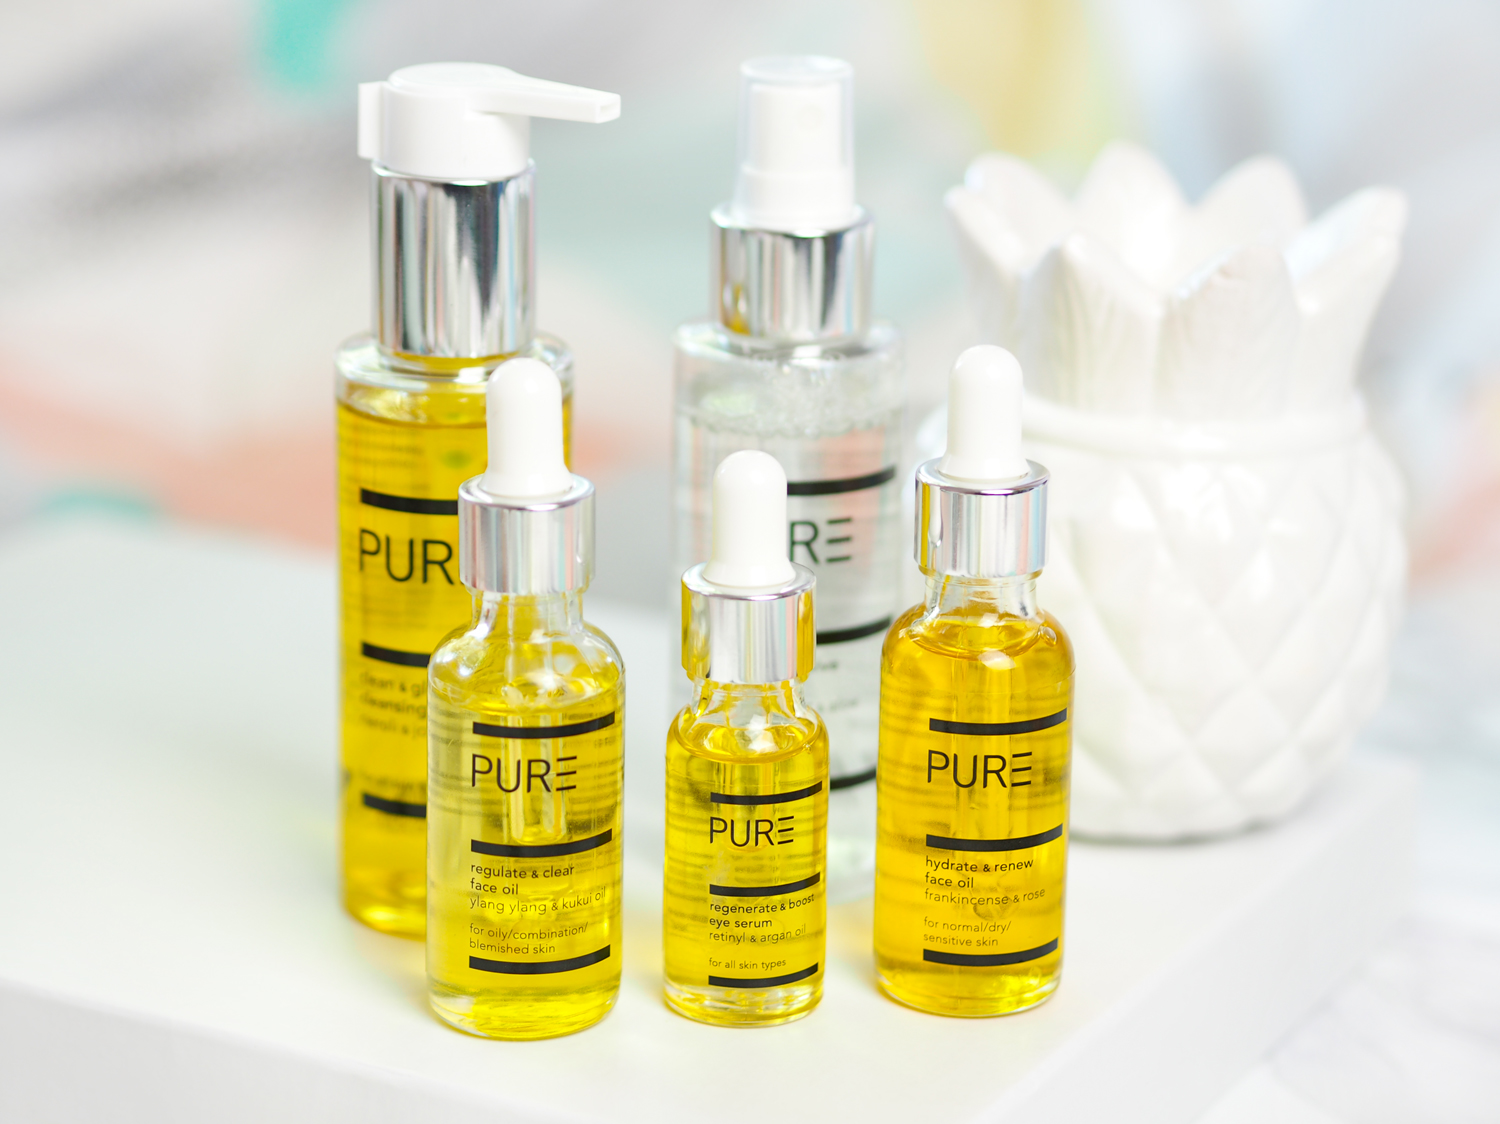 PURE Spa & Beauty Skincare Range